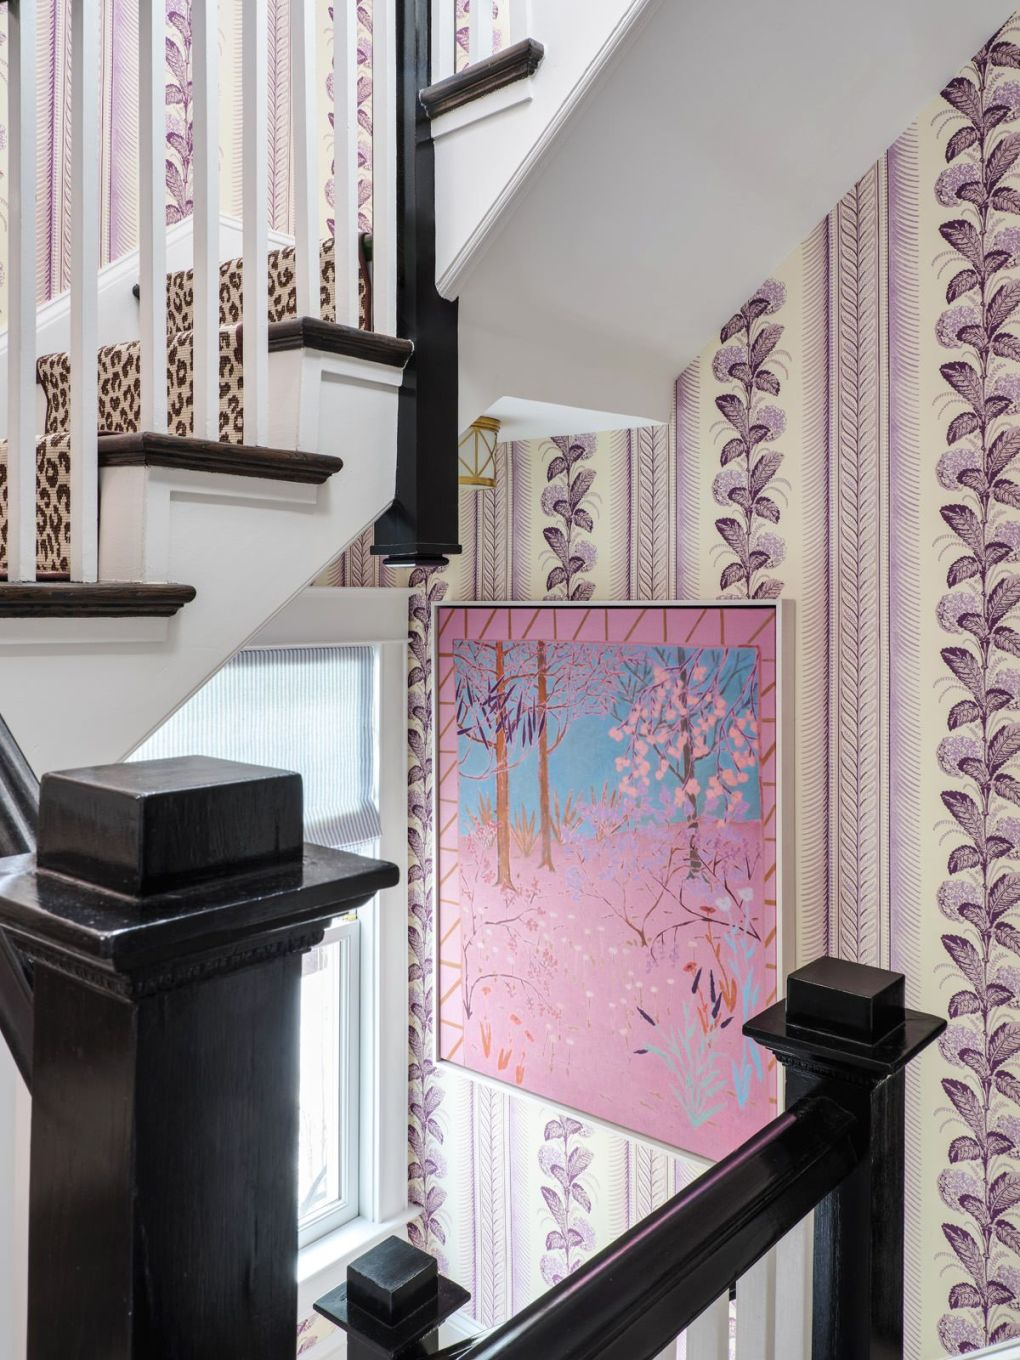 Room, Wall, Interior design, Curtain, Purple, Pink, Wallpaper, Stairs, Molding, Architecture,